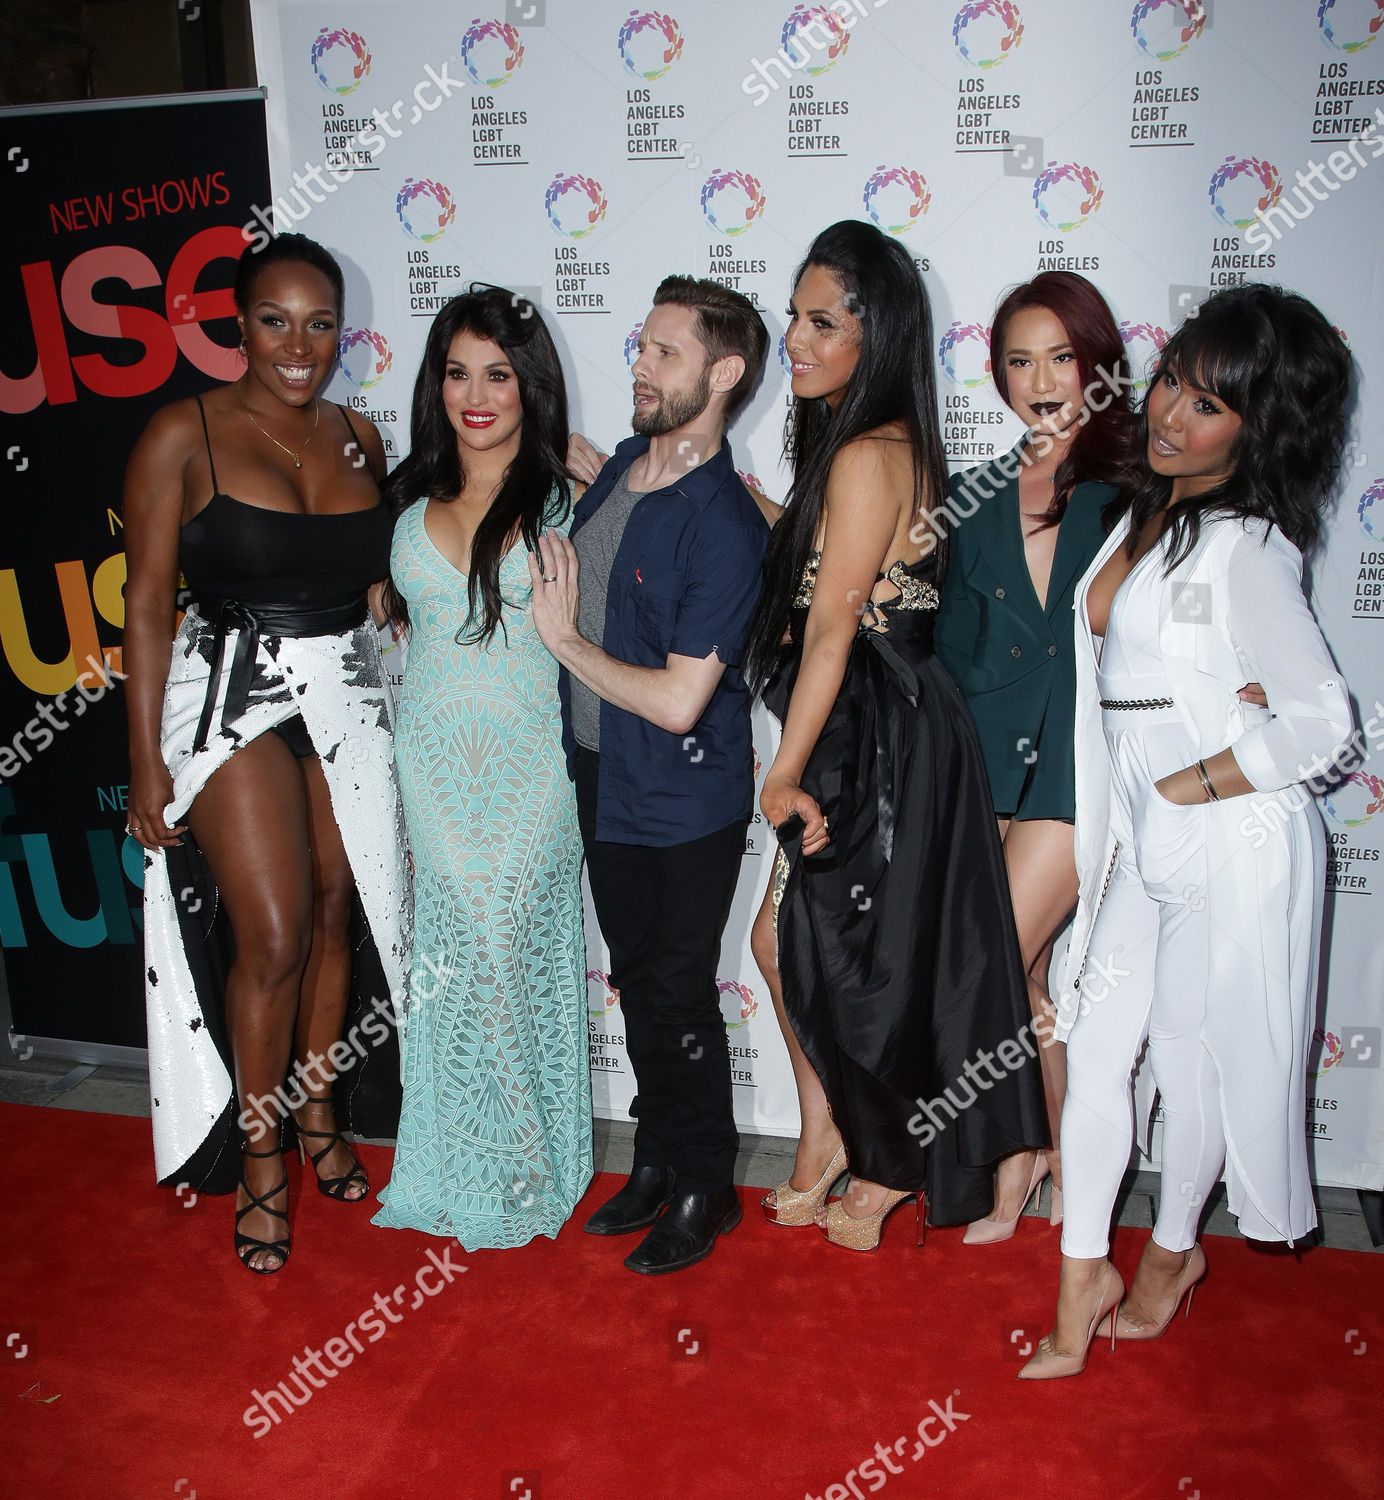 'Transcendent' TV Series Premiere Party, LGBT Center, Los Angeles, America 28 Sep 2015